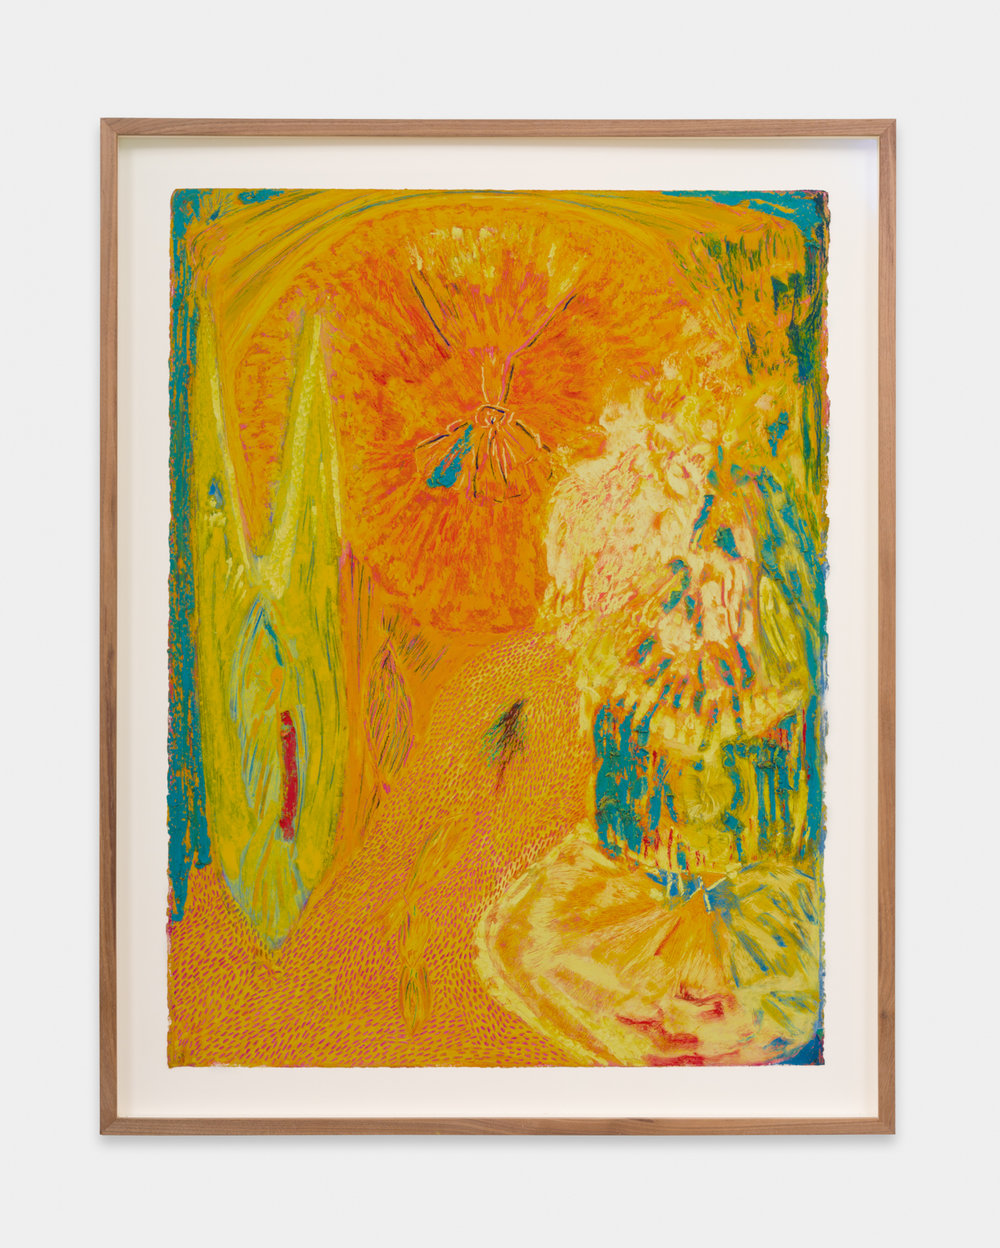 Mimi Lauter  Untitled  2018 Oil pastel and soft pastel on paper 30h x 22 ½w in MLaut084